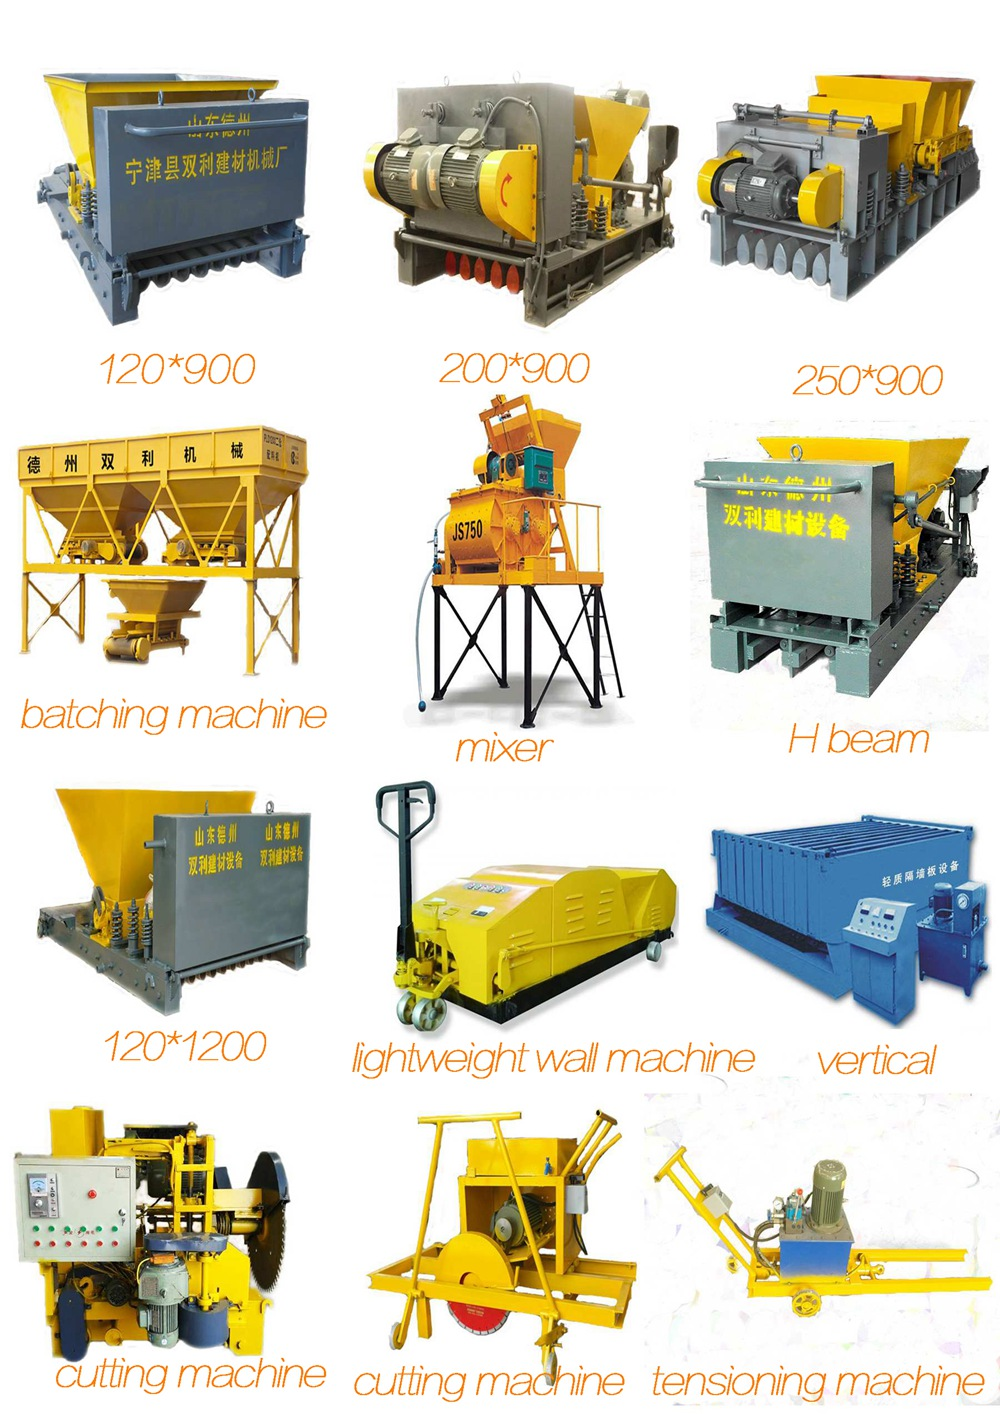 precast concrete fence machine for cement fencing production with concrete fence post mold